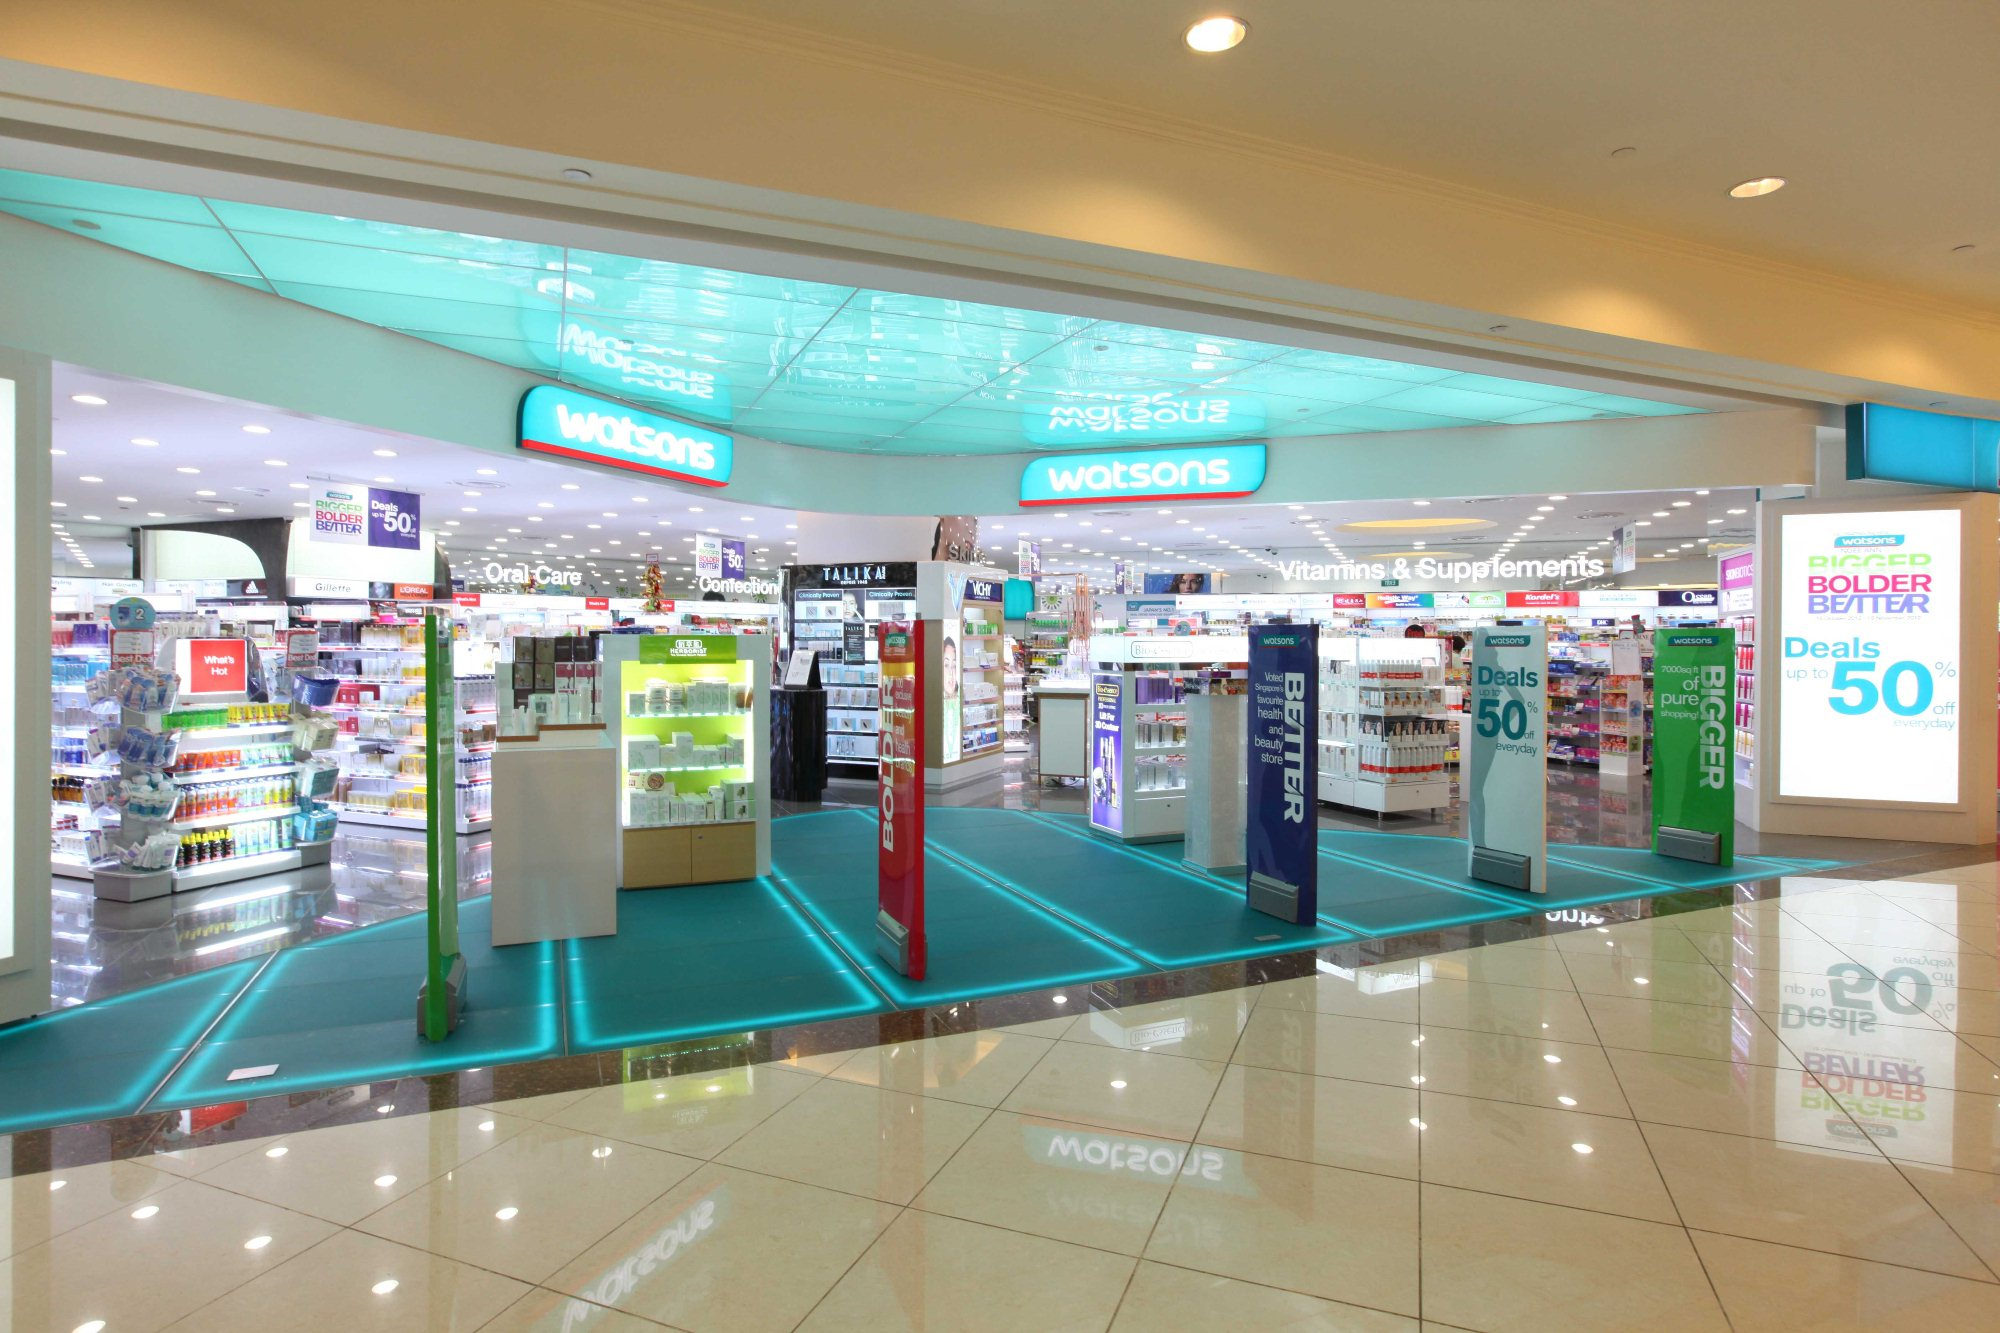 Watsons at Takashimaya Shopping Centre